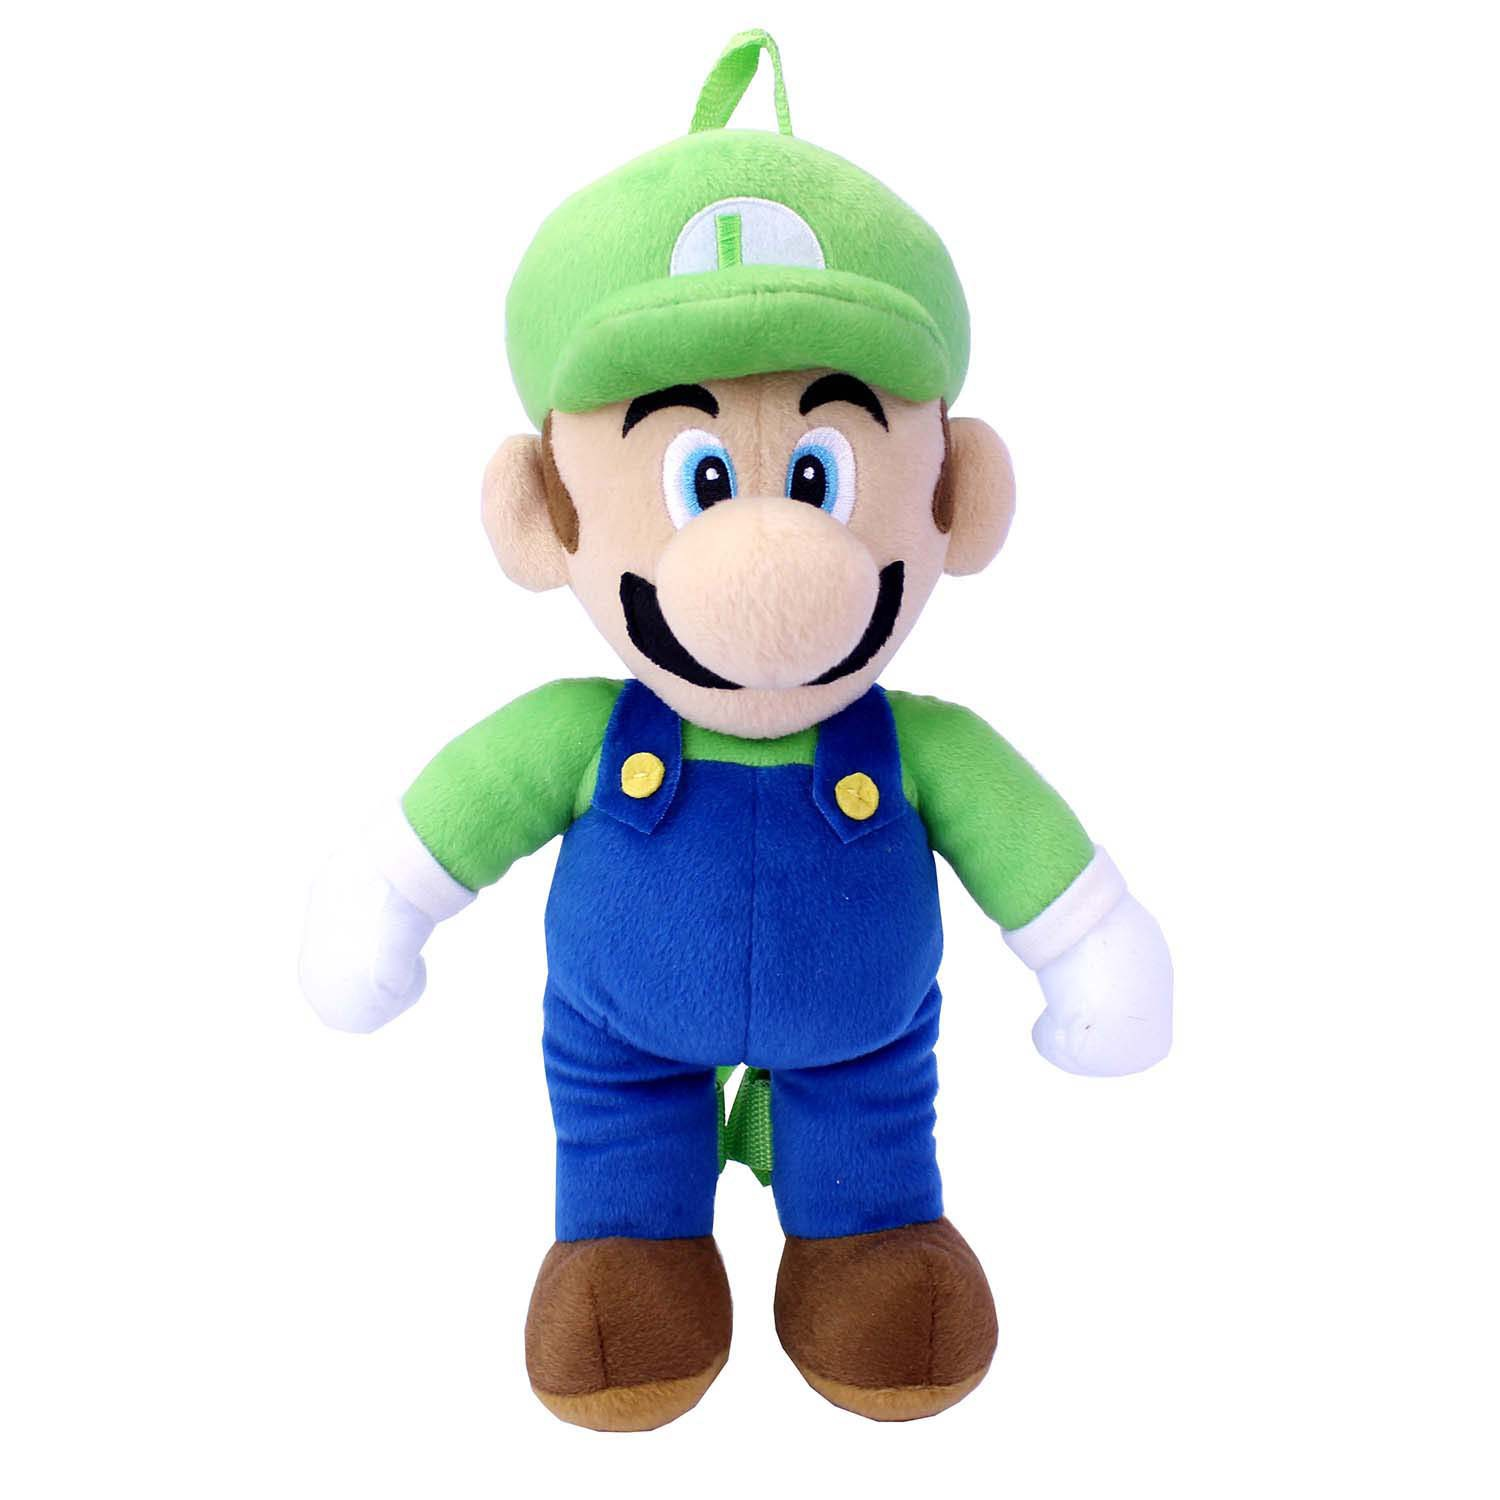 Super Mario Bros. Luigi Plush Backpack